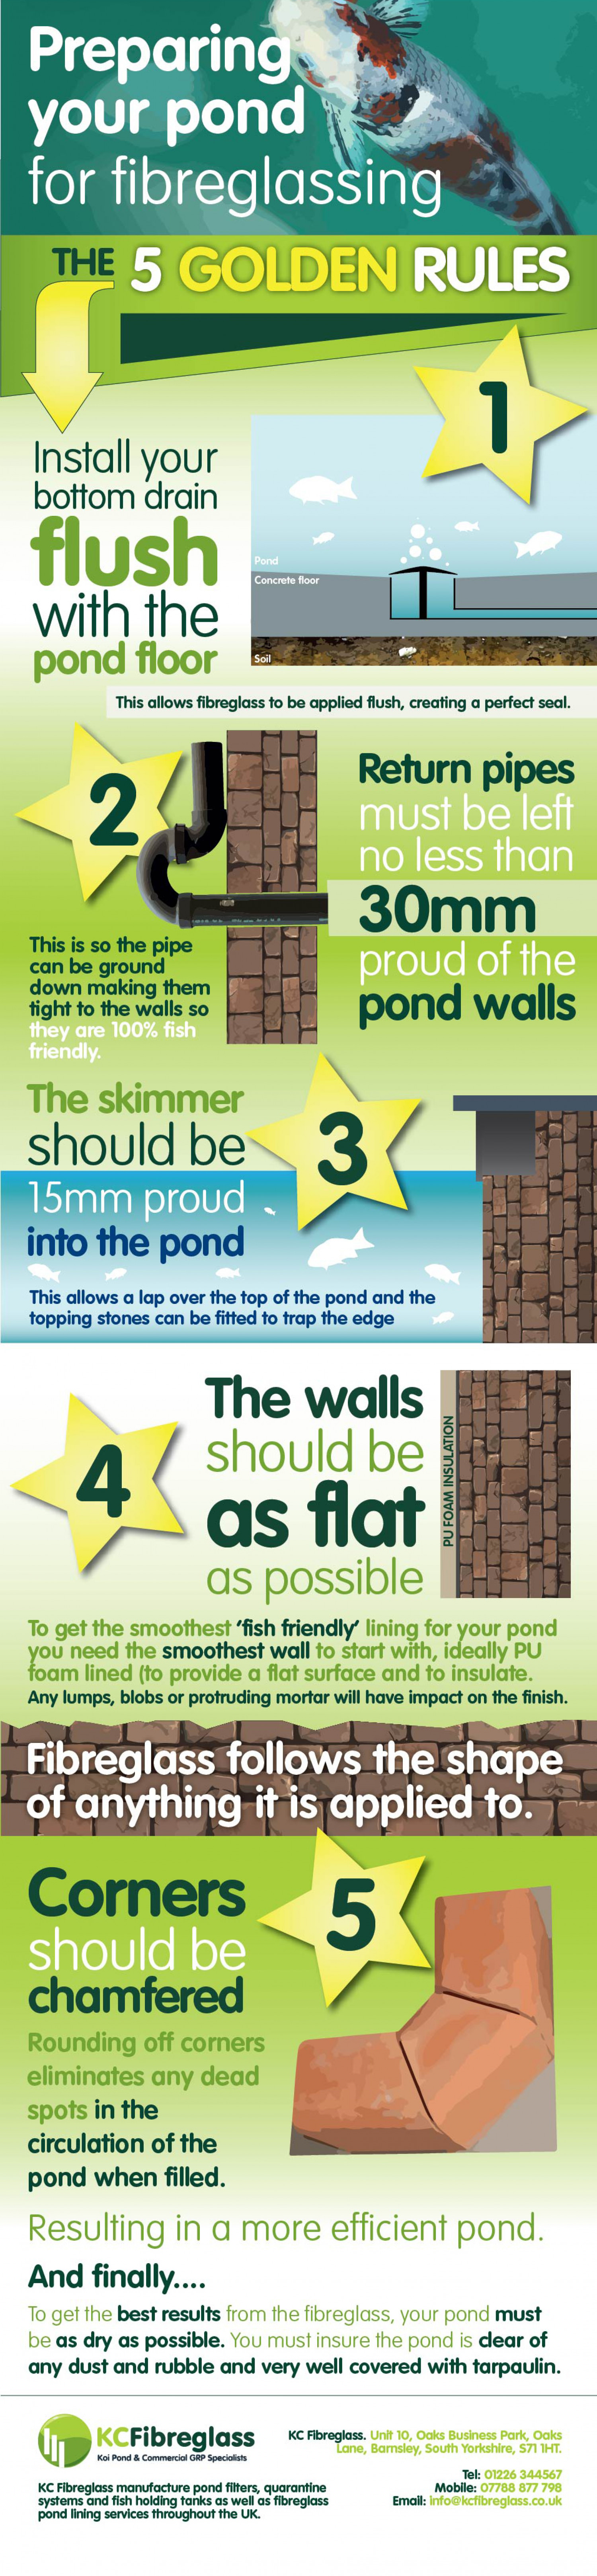 Preparing Your Pond For Fibreglassing Infographic